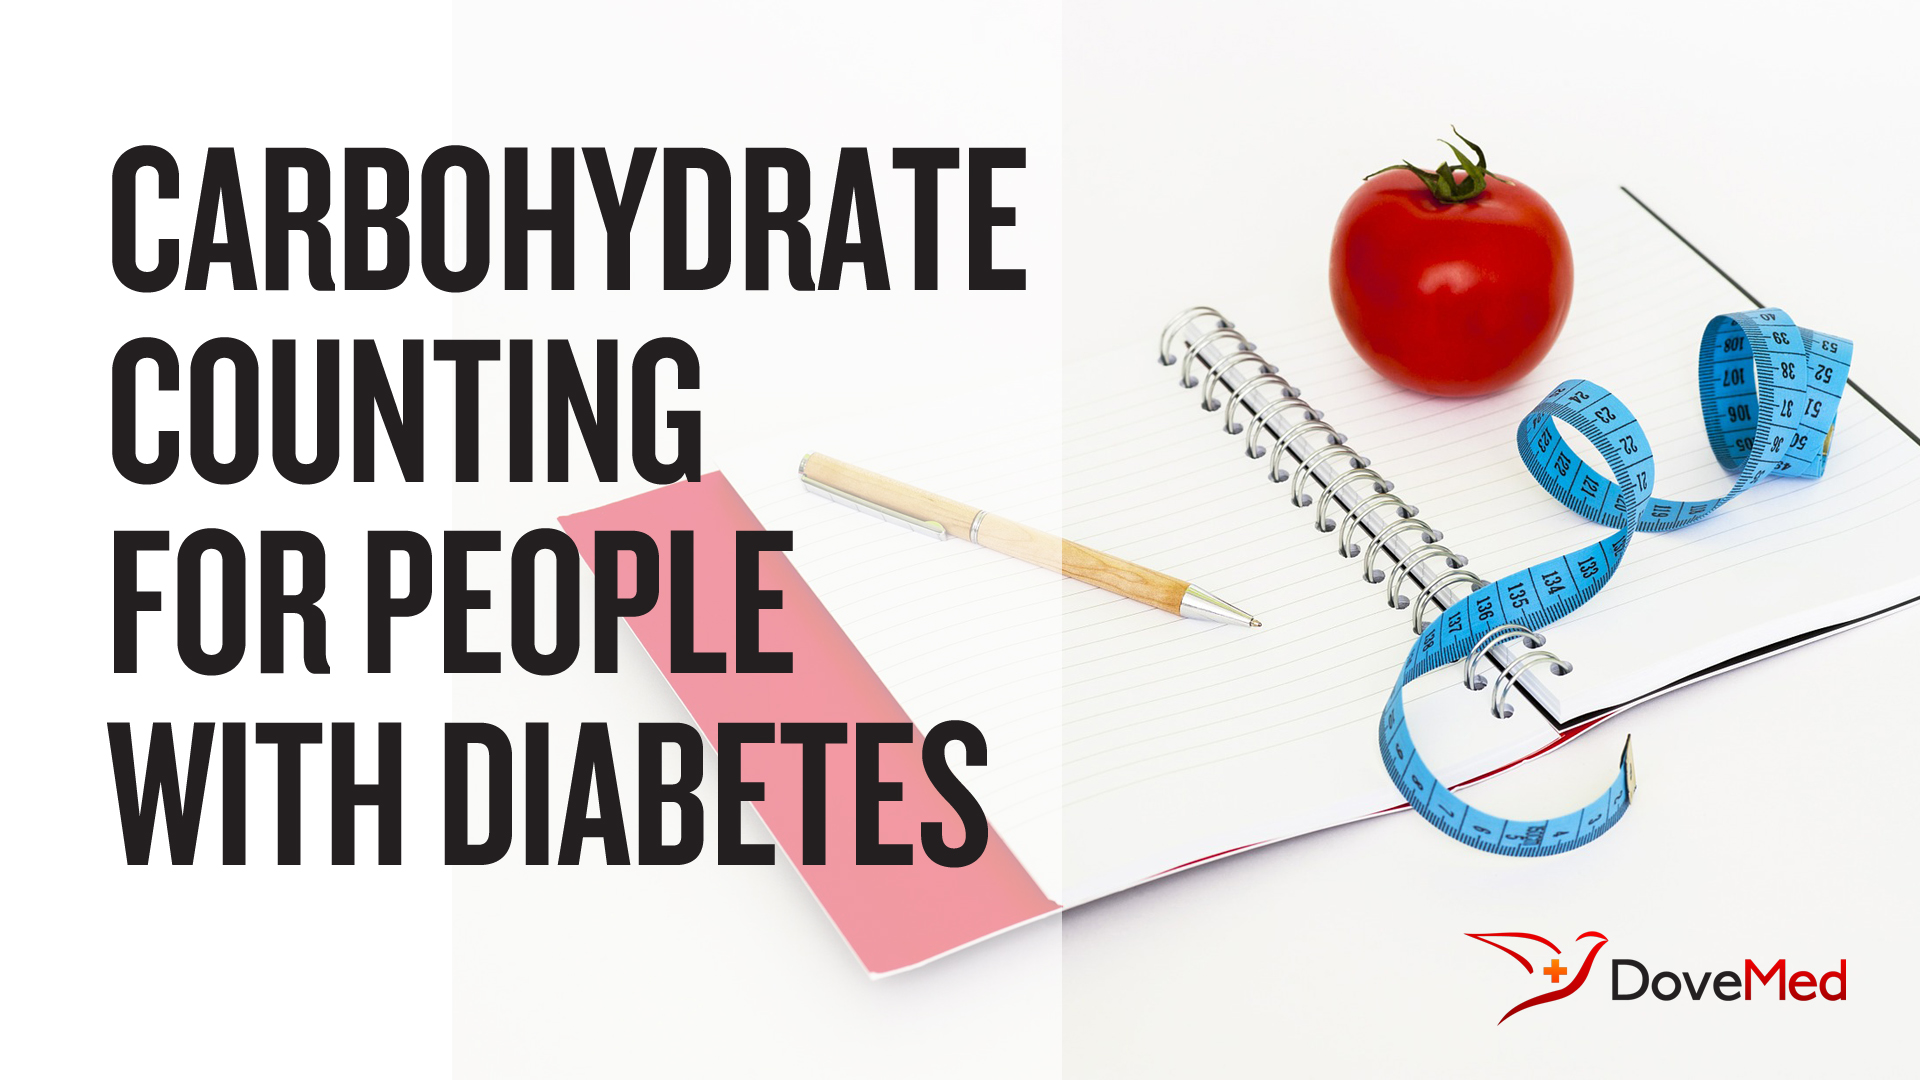 Carbohydrate Counting For People With Diabetes